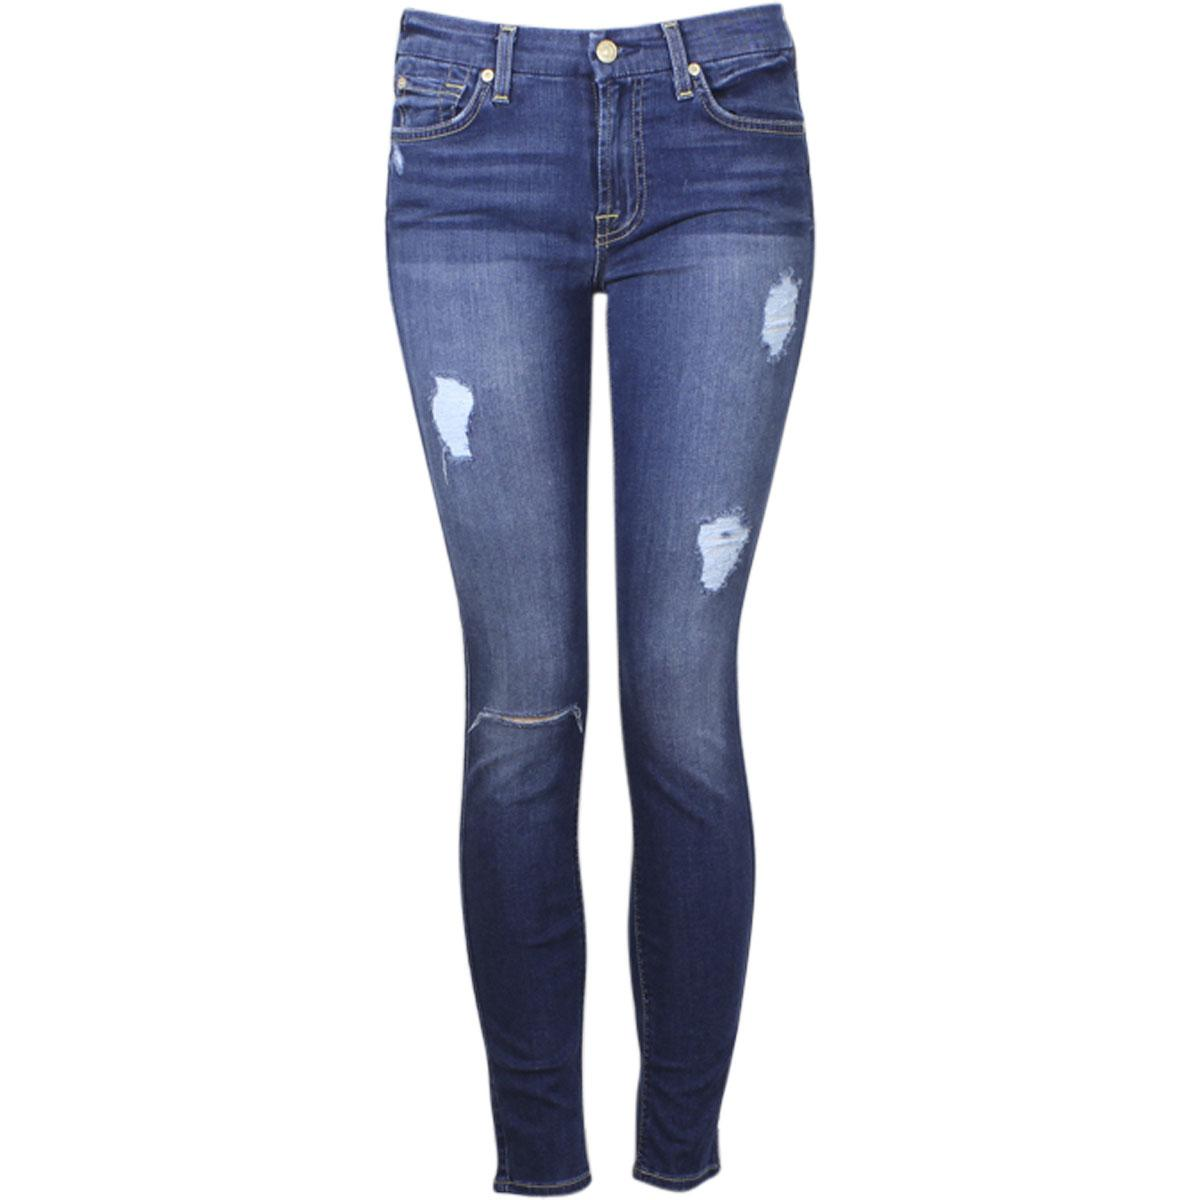 Image of 7 For All Mankind Women's The Ankle Skinny With Destroy (B)Air Denim Jeans - Blue - 25 (0)